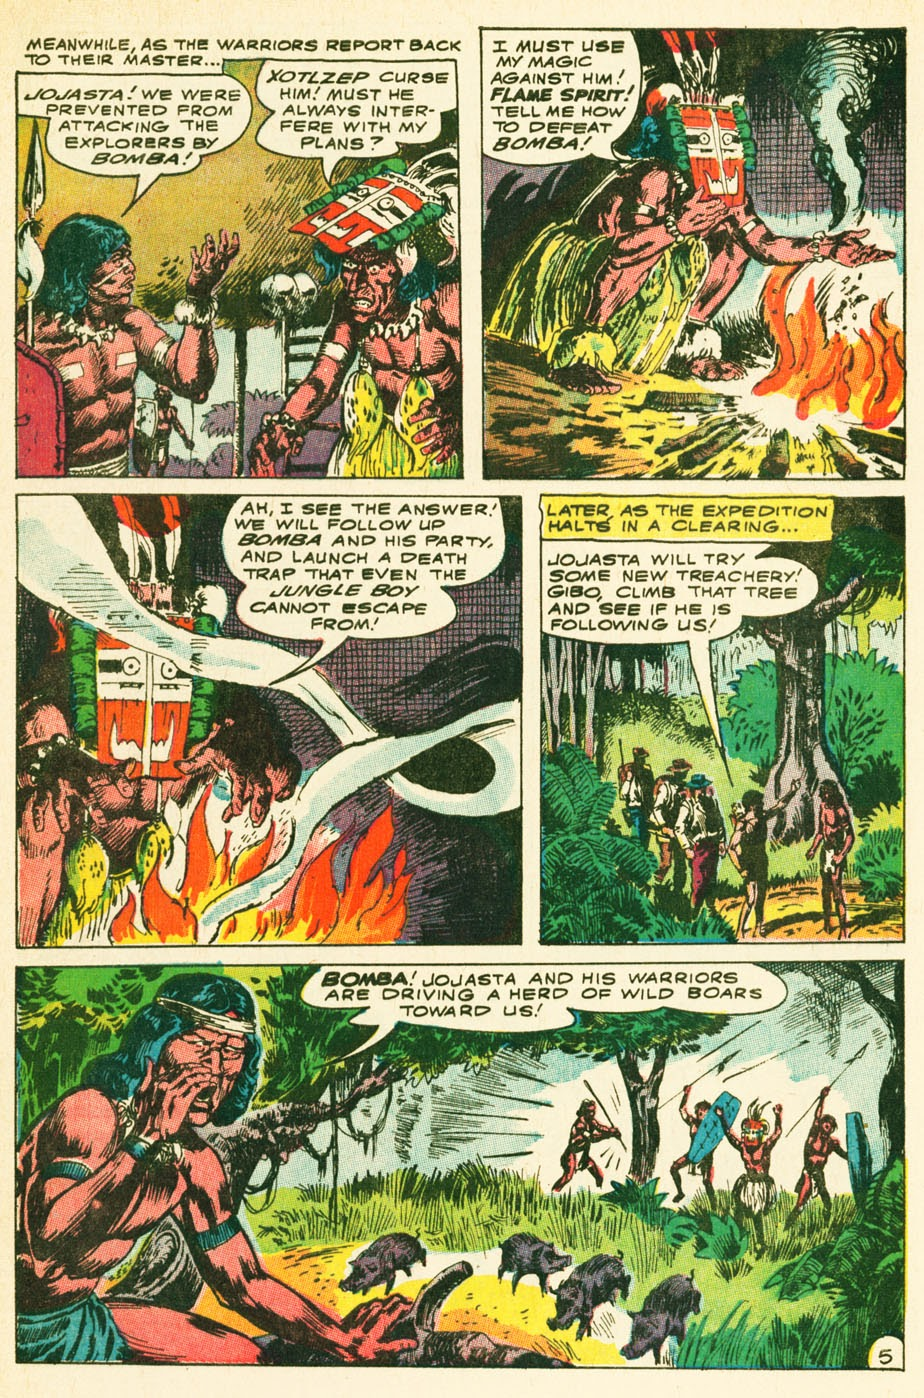 Bomba, The Jungle Boy issue 1 - Page 6